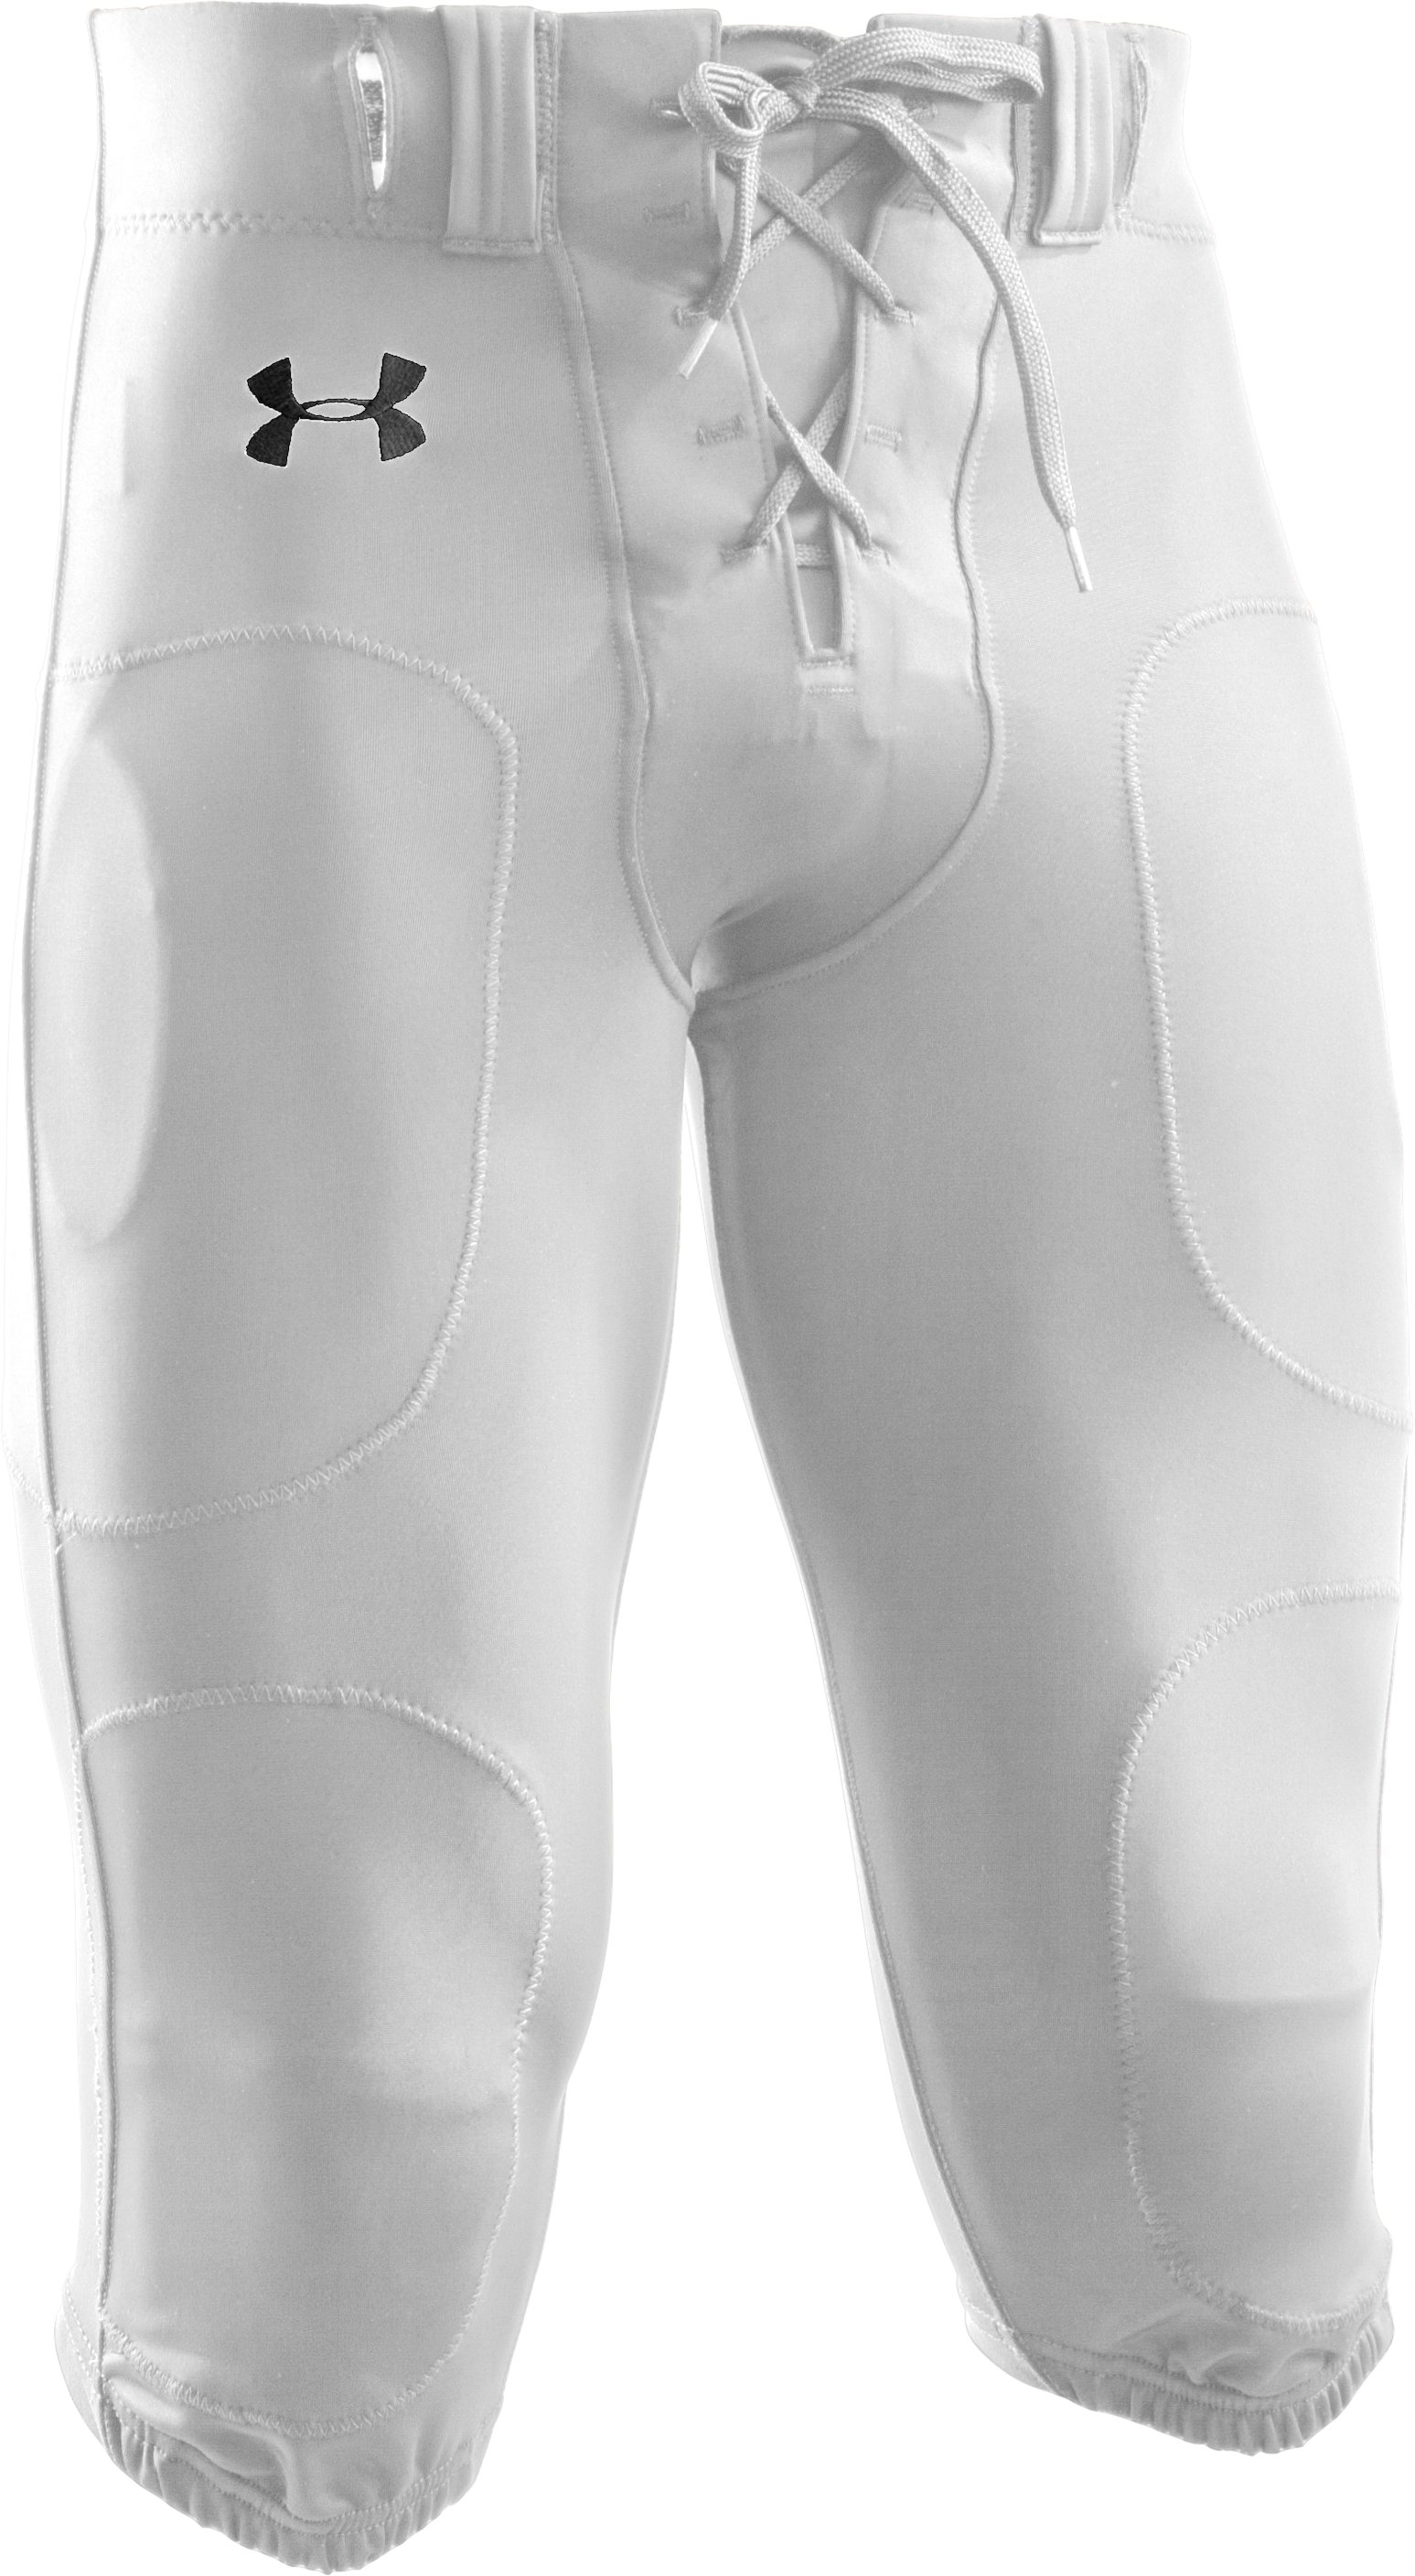 Men's Signature Football Pants, White, undefined